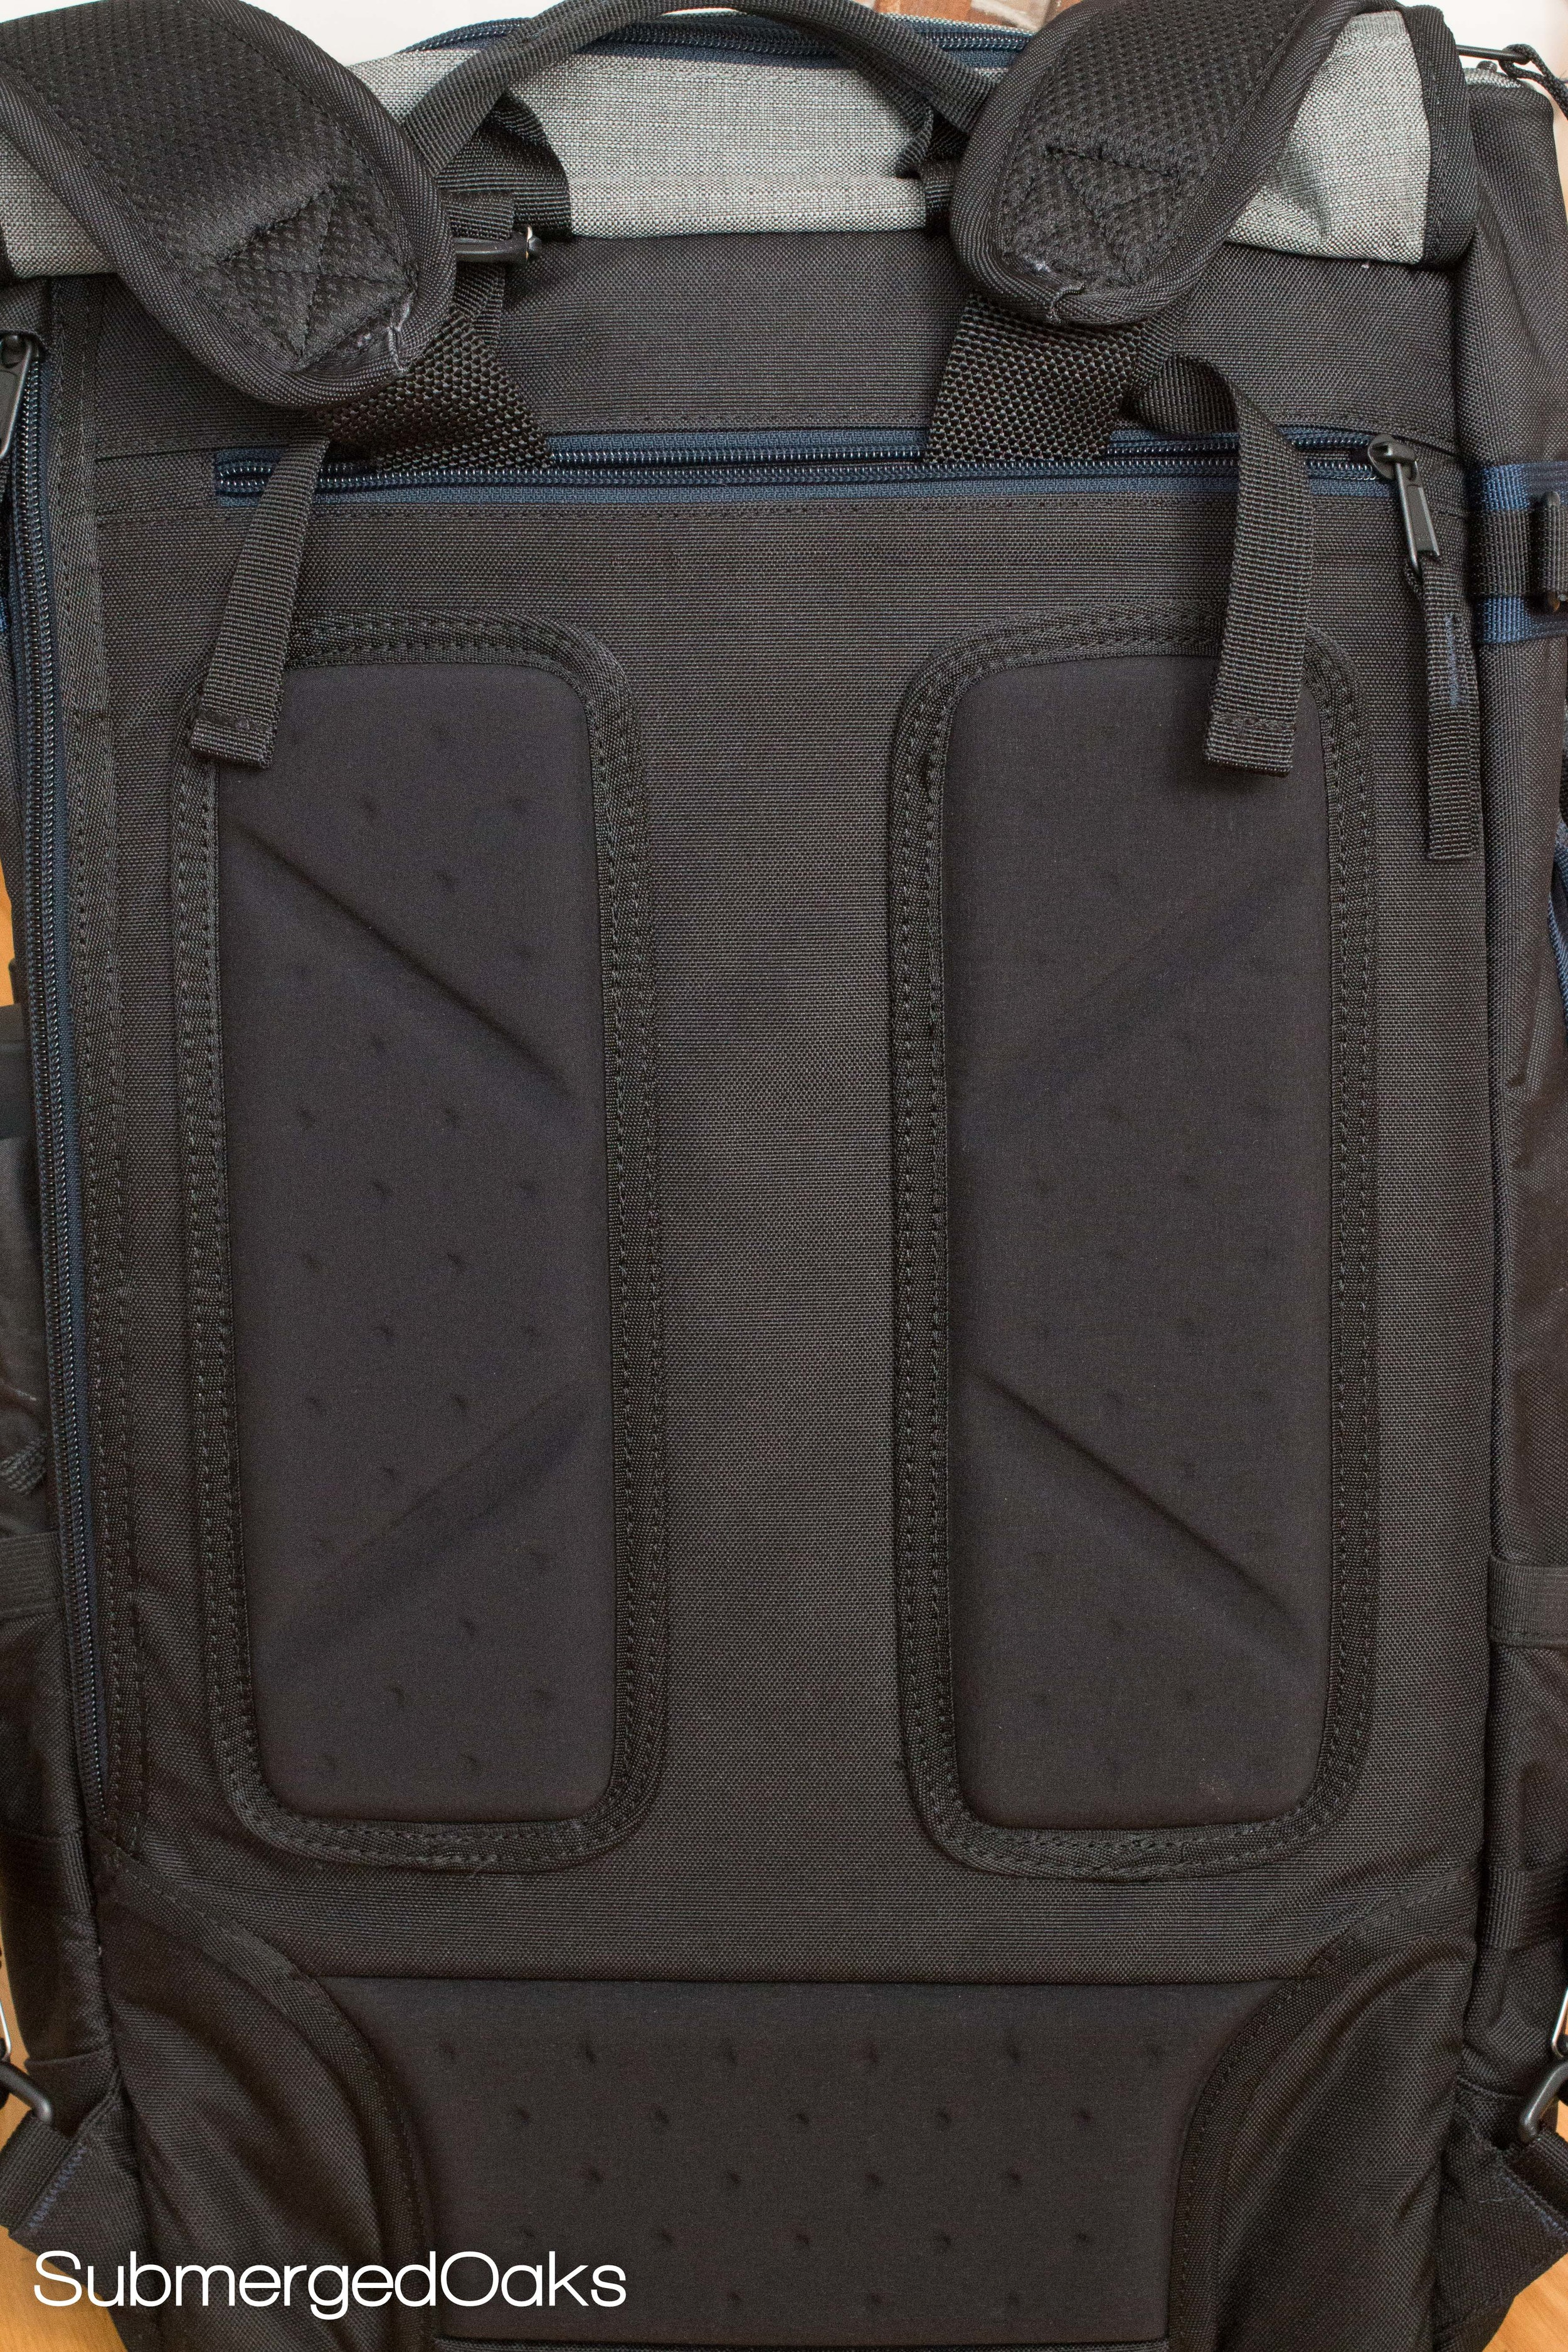 Generous padding on the back makes it more comfortable to carry